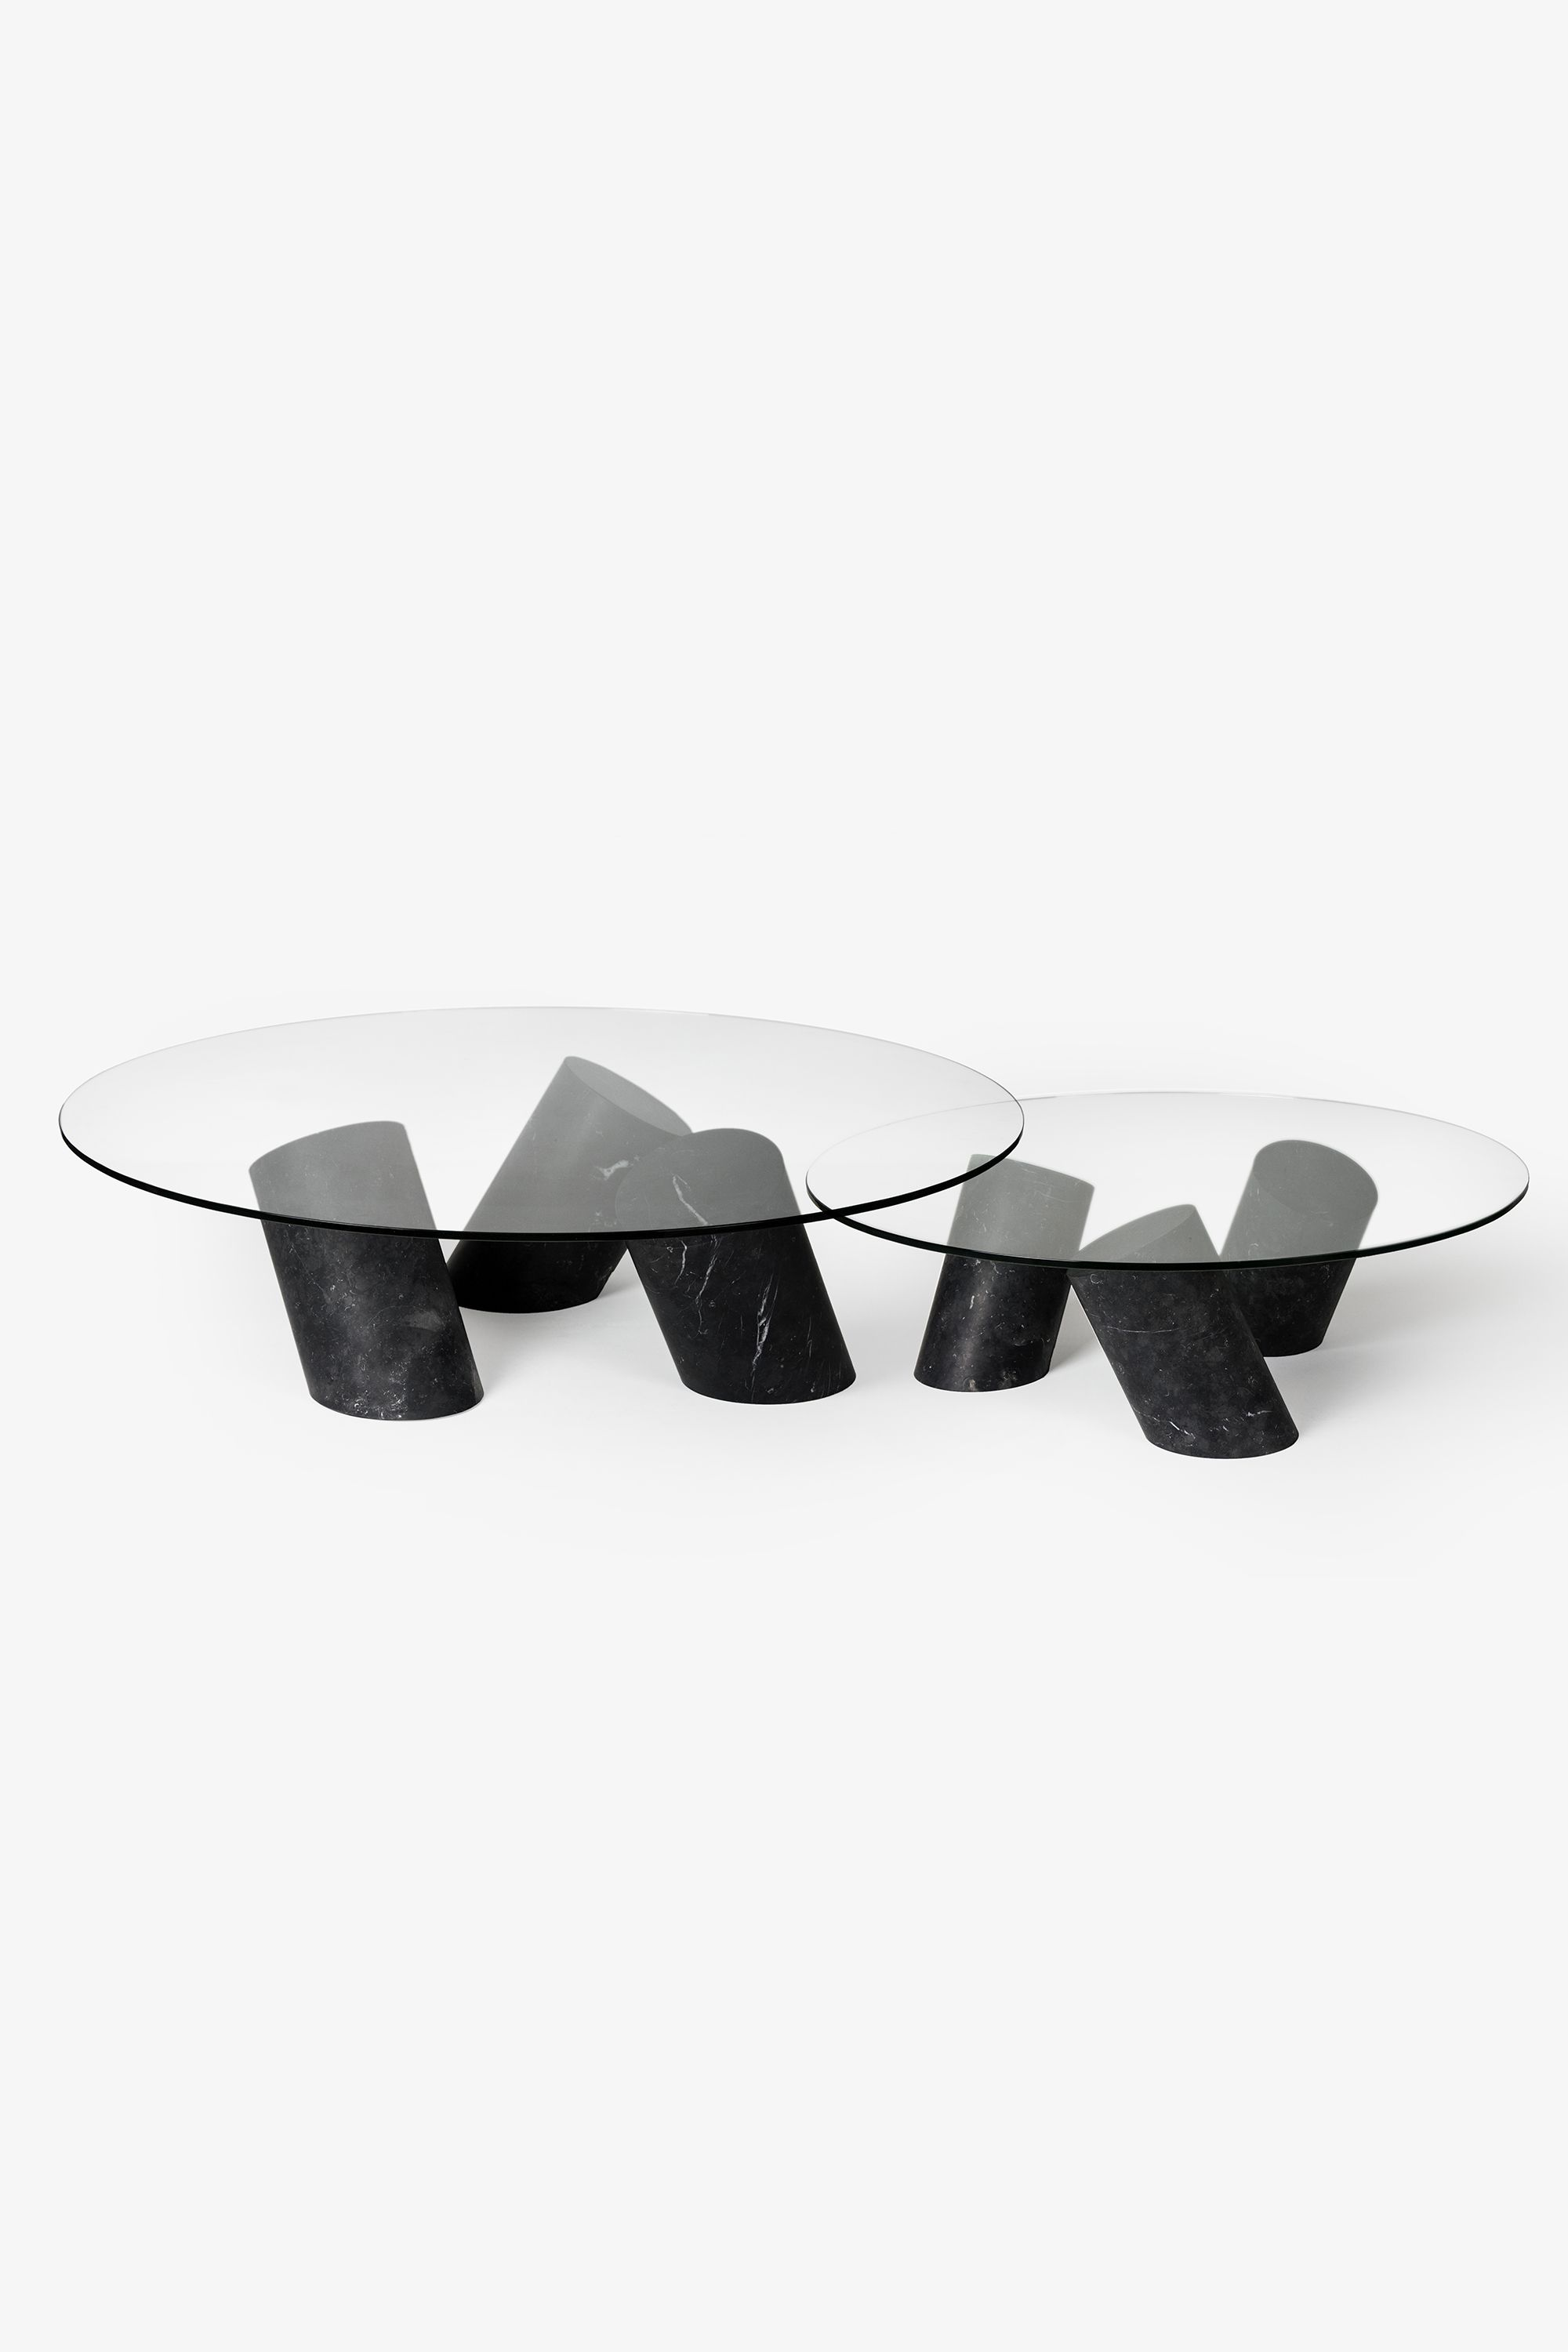 Carnac Low Table Gofi Drum Coffee Table Oval Coffee Tables Concrete Dining Table [ 3000 x 2000 Pixel ]